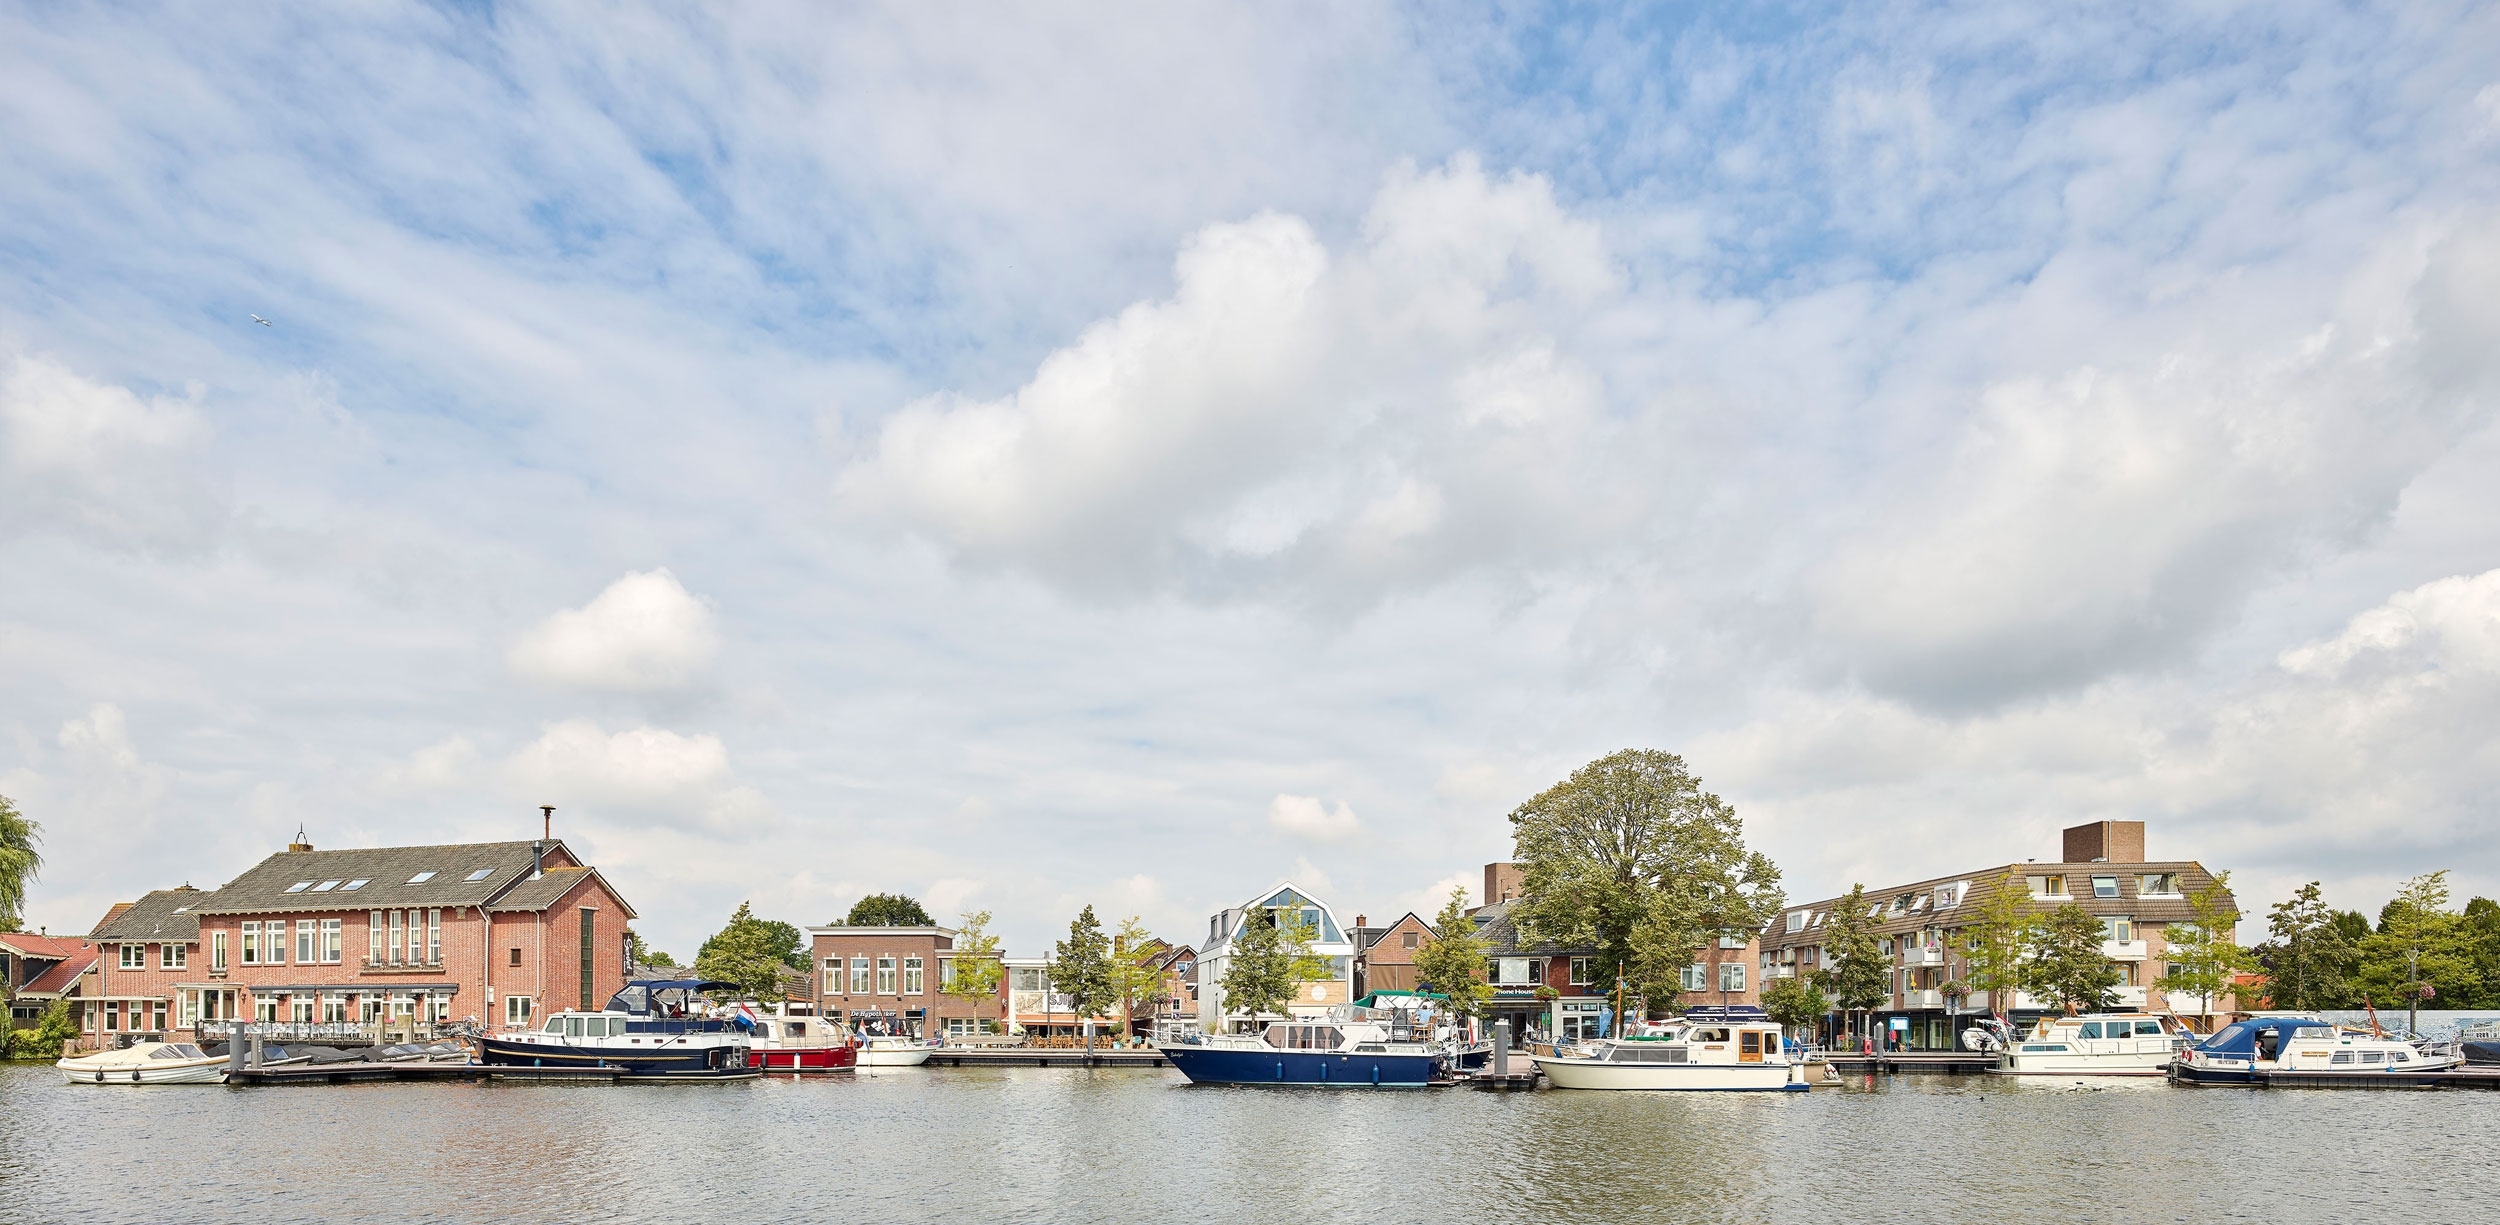 Waterfront Uithoorn-2-2500x1225px